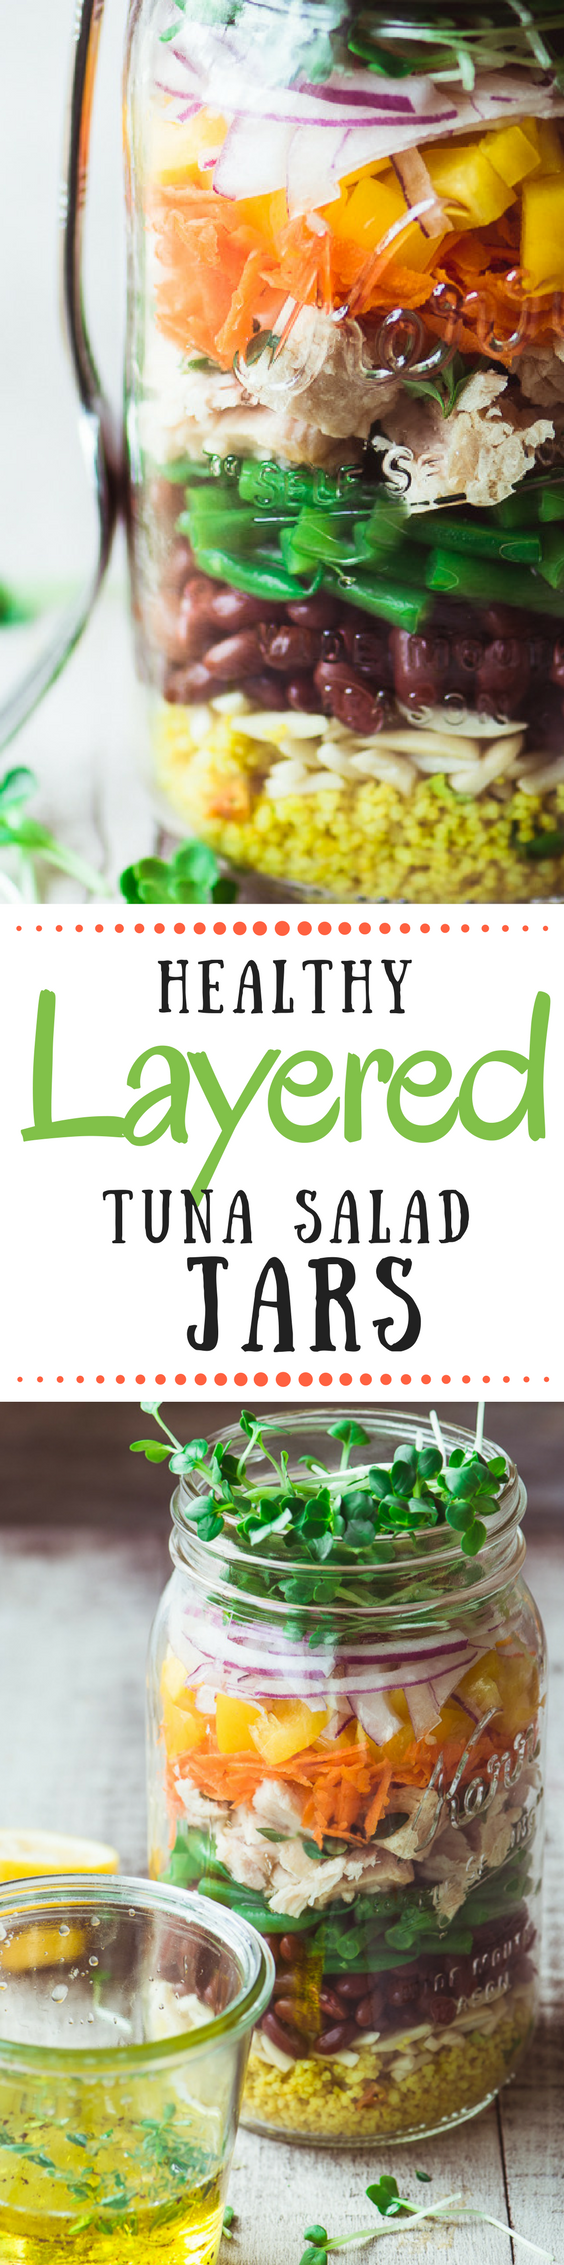 Want to make everyone at work jealous?  Pack one of these colorful and super healthy layered Tuna Salad Jars for lunch ~ they're a delicious cure for the brown bag blues! #masonjarsalad #lunch #workinglunch #masonjars #tunasalad #tuna #healthylunch #mealprep #lunchprep #layeredsalad #glutenfree